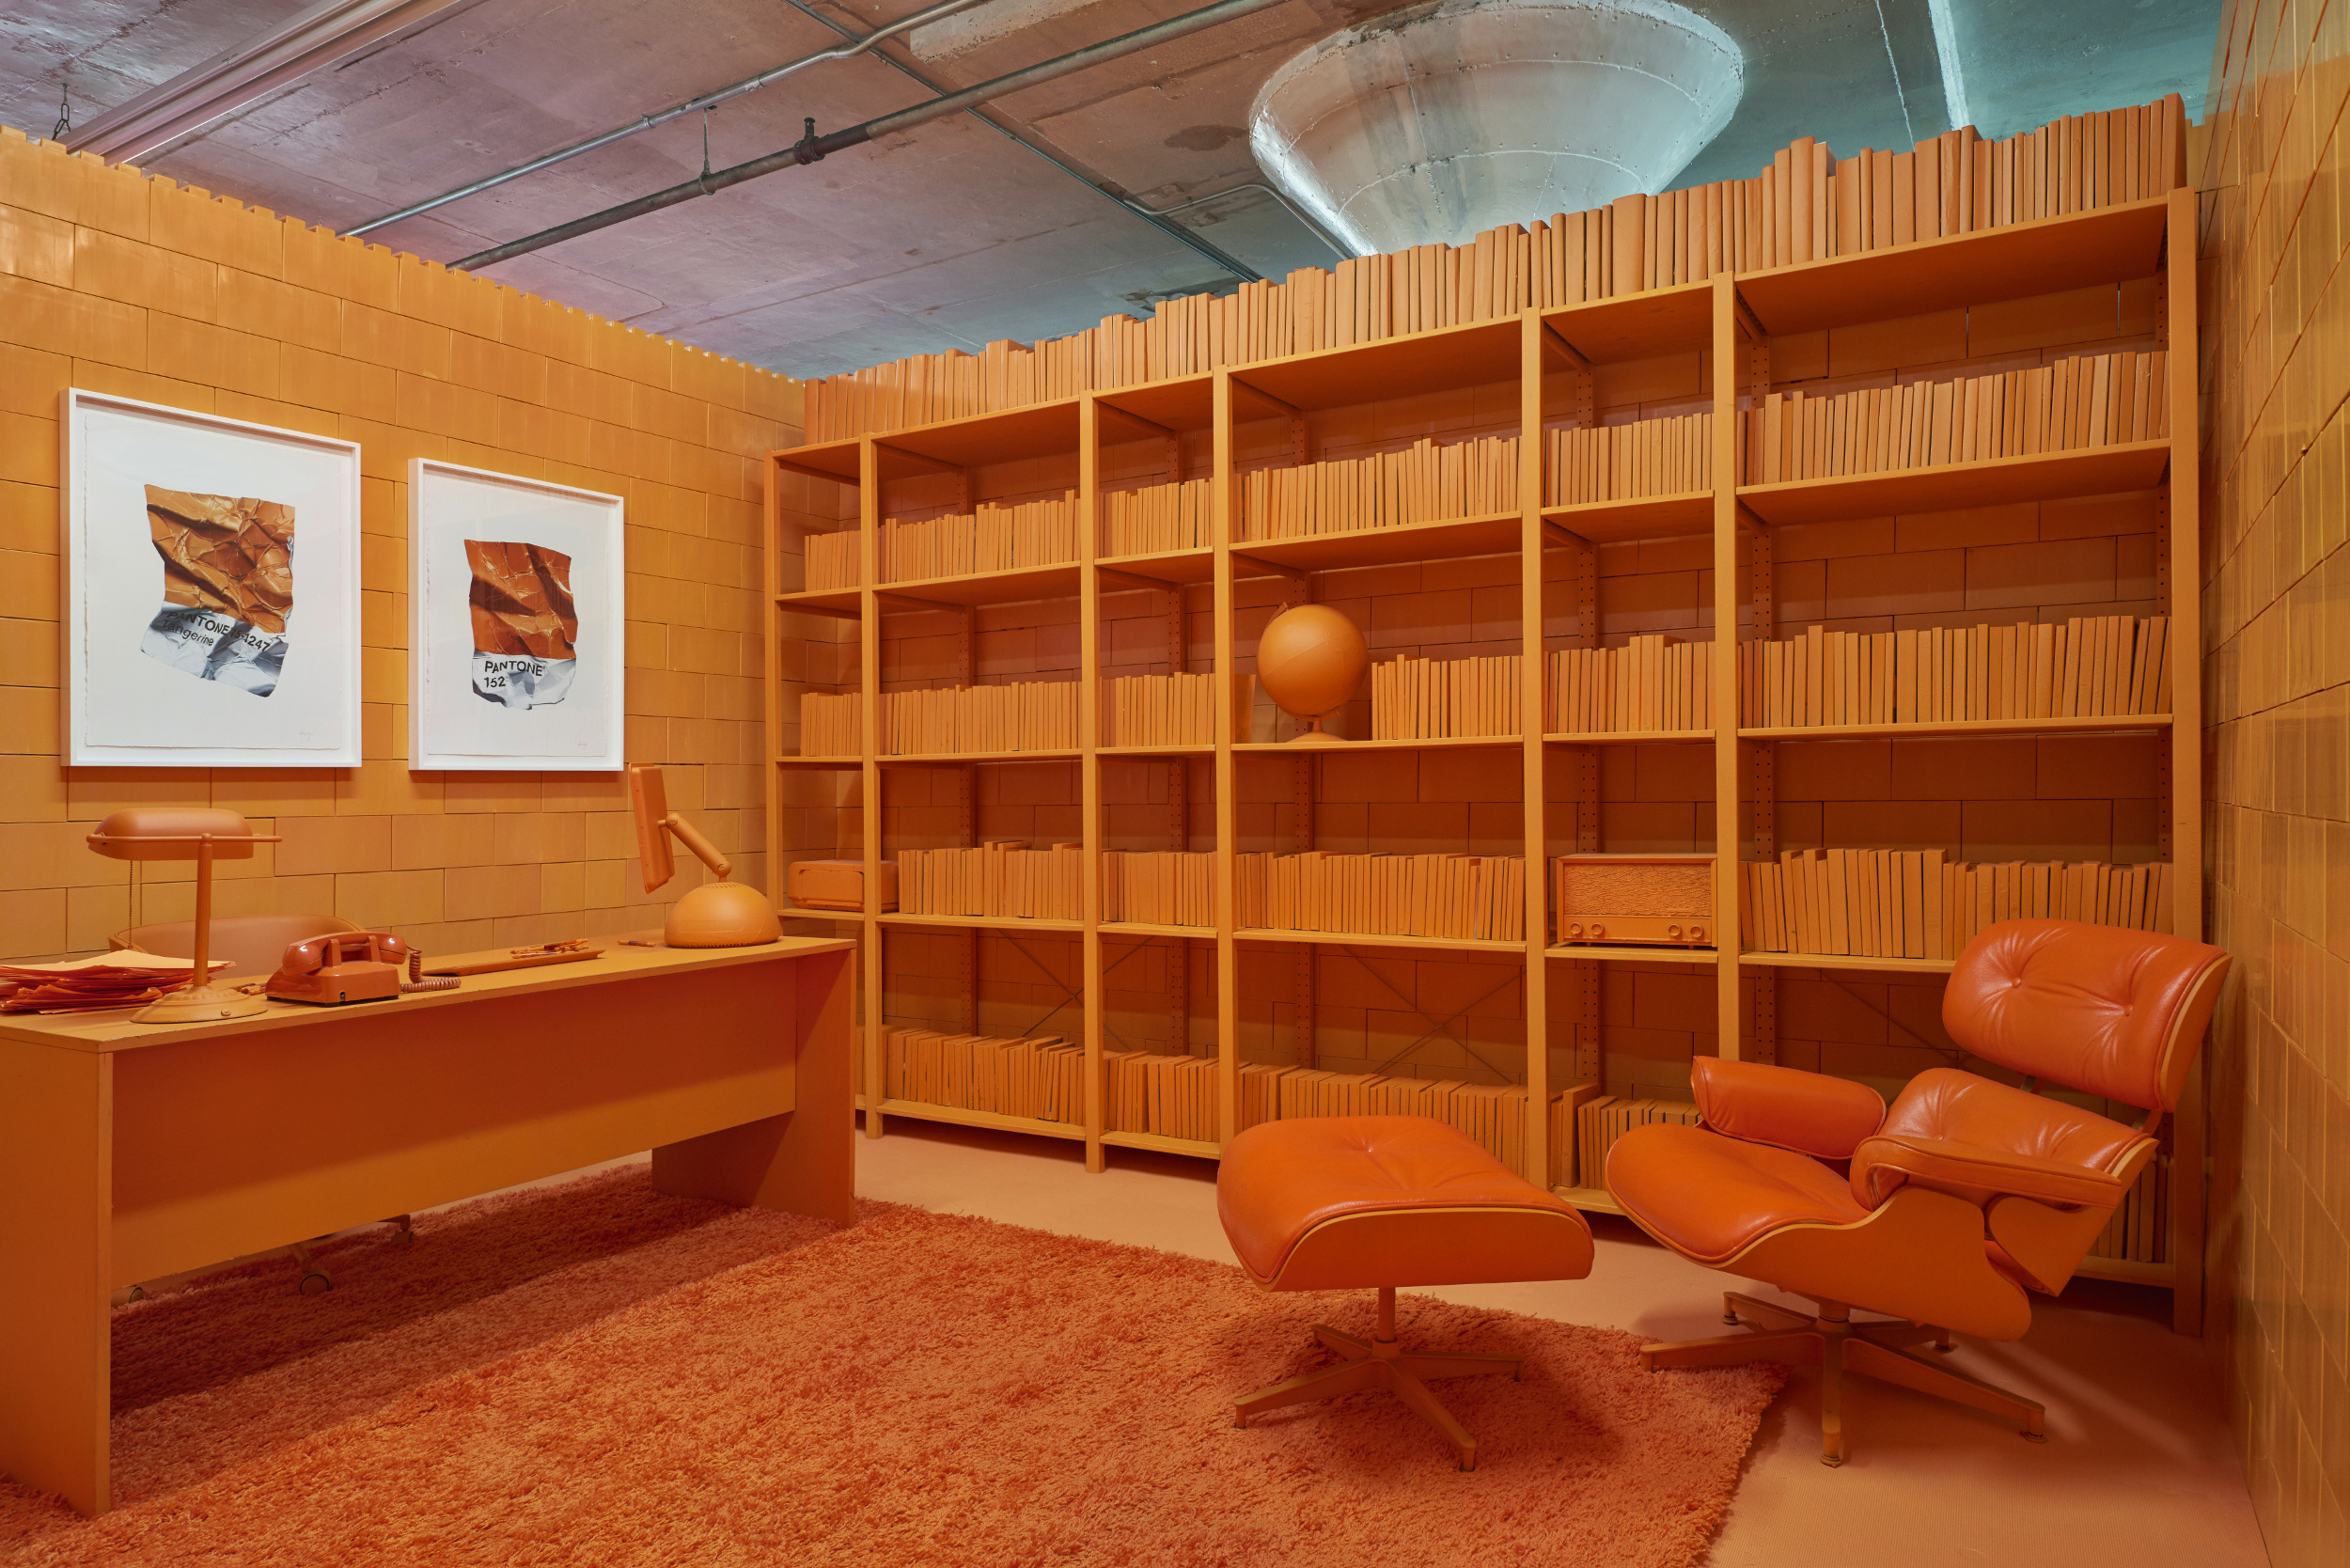 The orange room at Monocrhome in New York City.